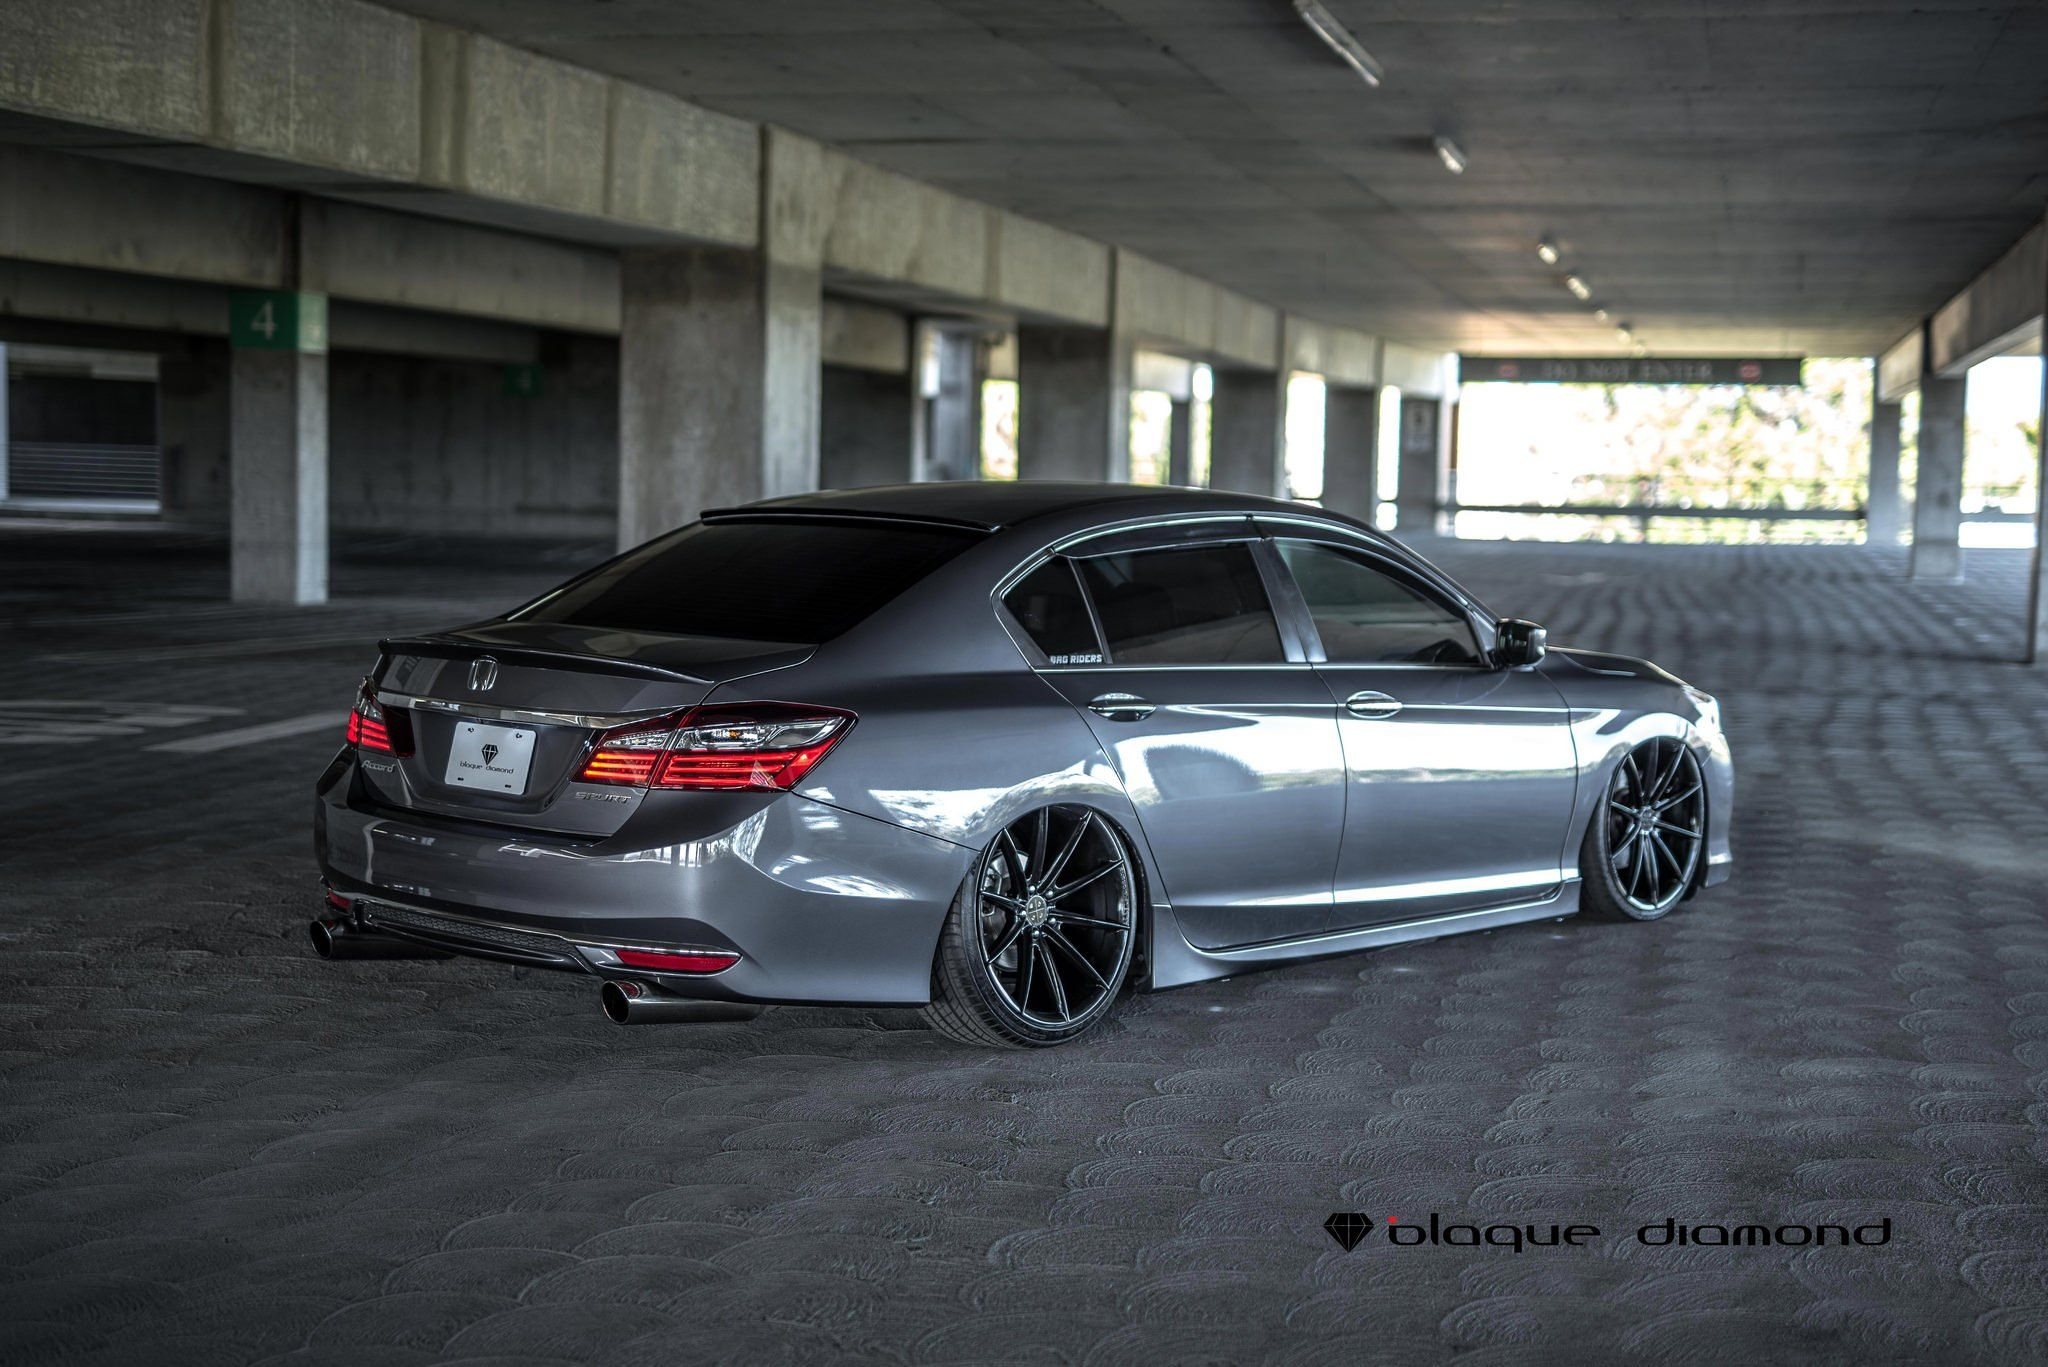 Stanced Honda Accord With Air Suspension and Black Diamond